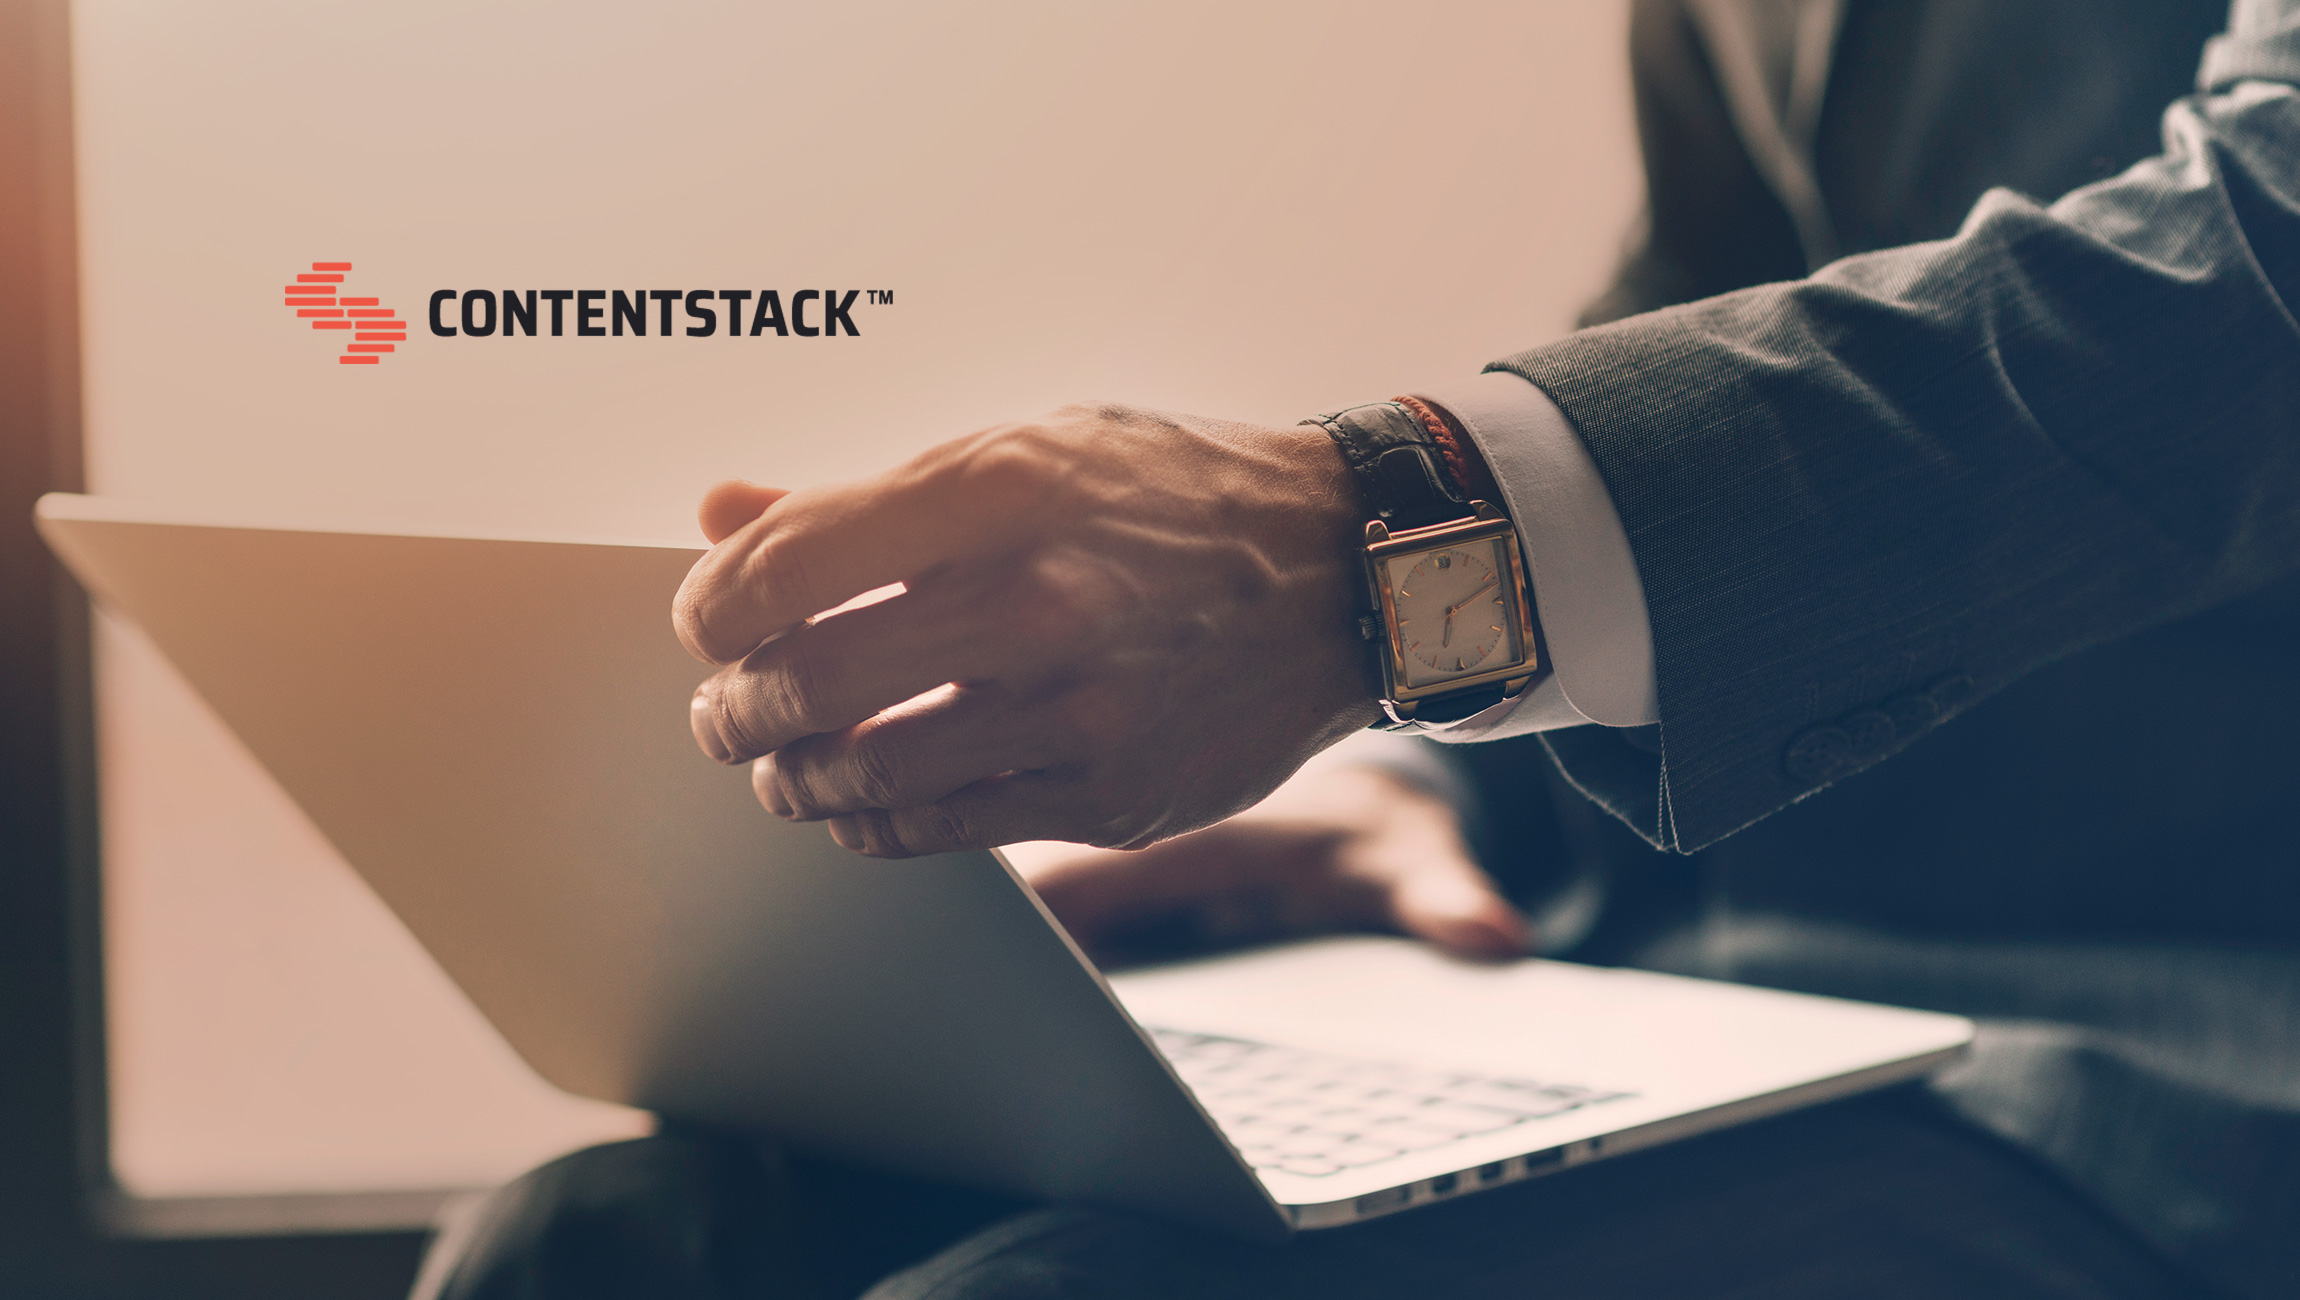 Contentstack Brings Intelligence from the World's Leading AI Solutions Directly into its Award-Winning Content Experience Platform